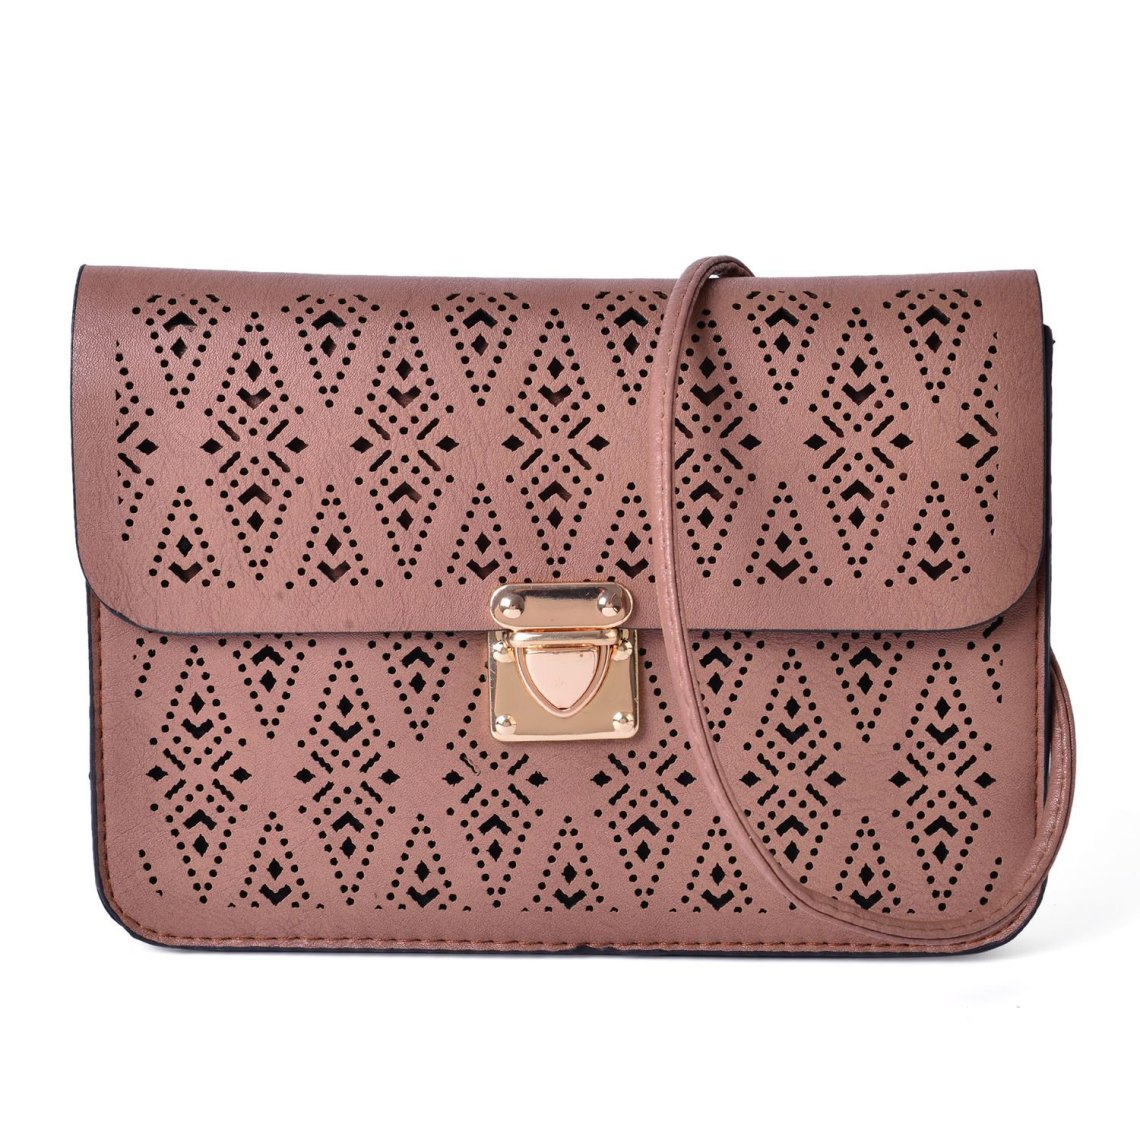 J Francis - Camel Faux Leather Crossbody Bag